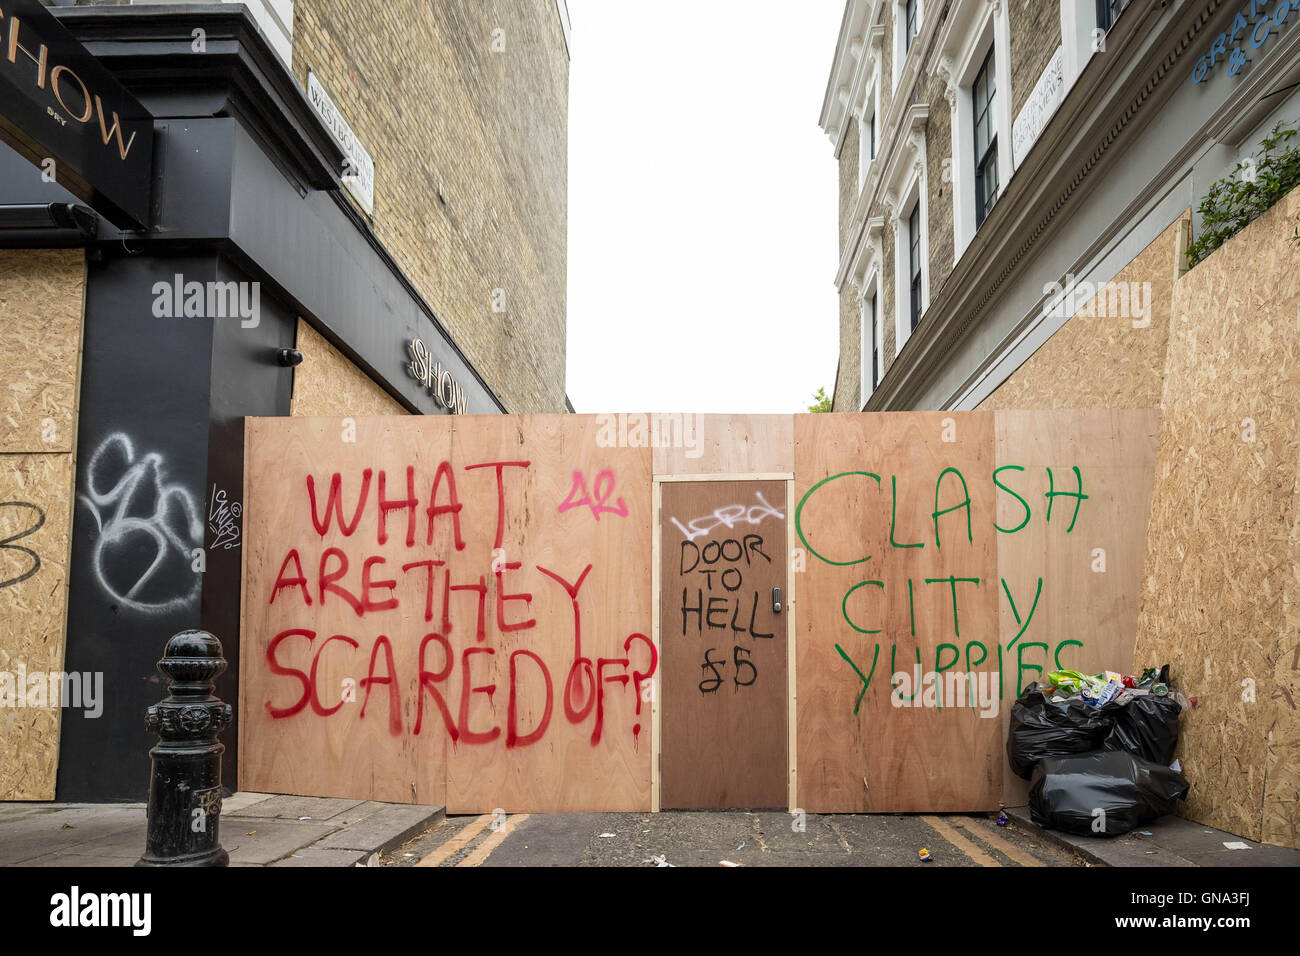 London, UK. 29th August 2016. Boarded-up local resident property seen during Notting Hill Carnival 2016. Angry residents - Stock Image